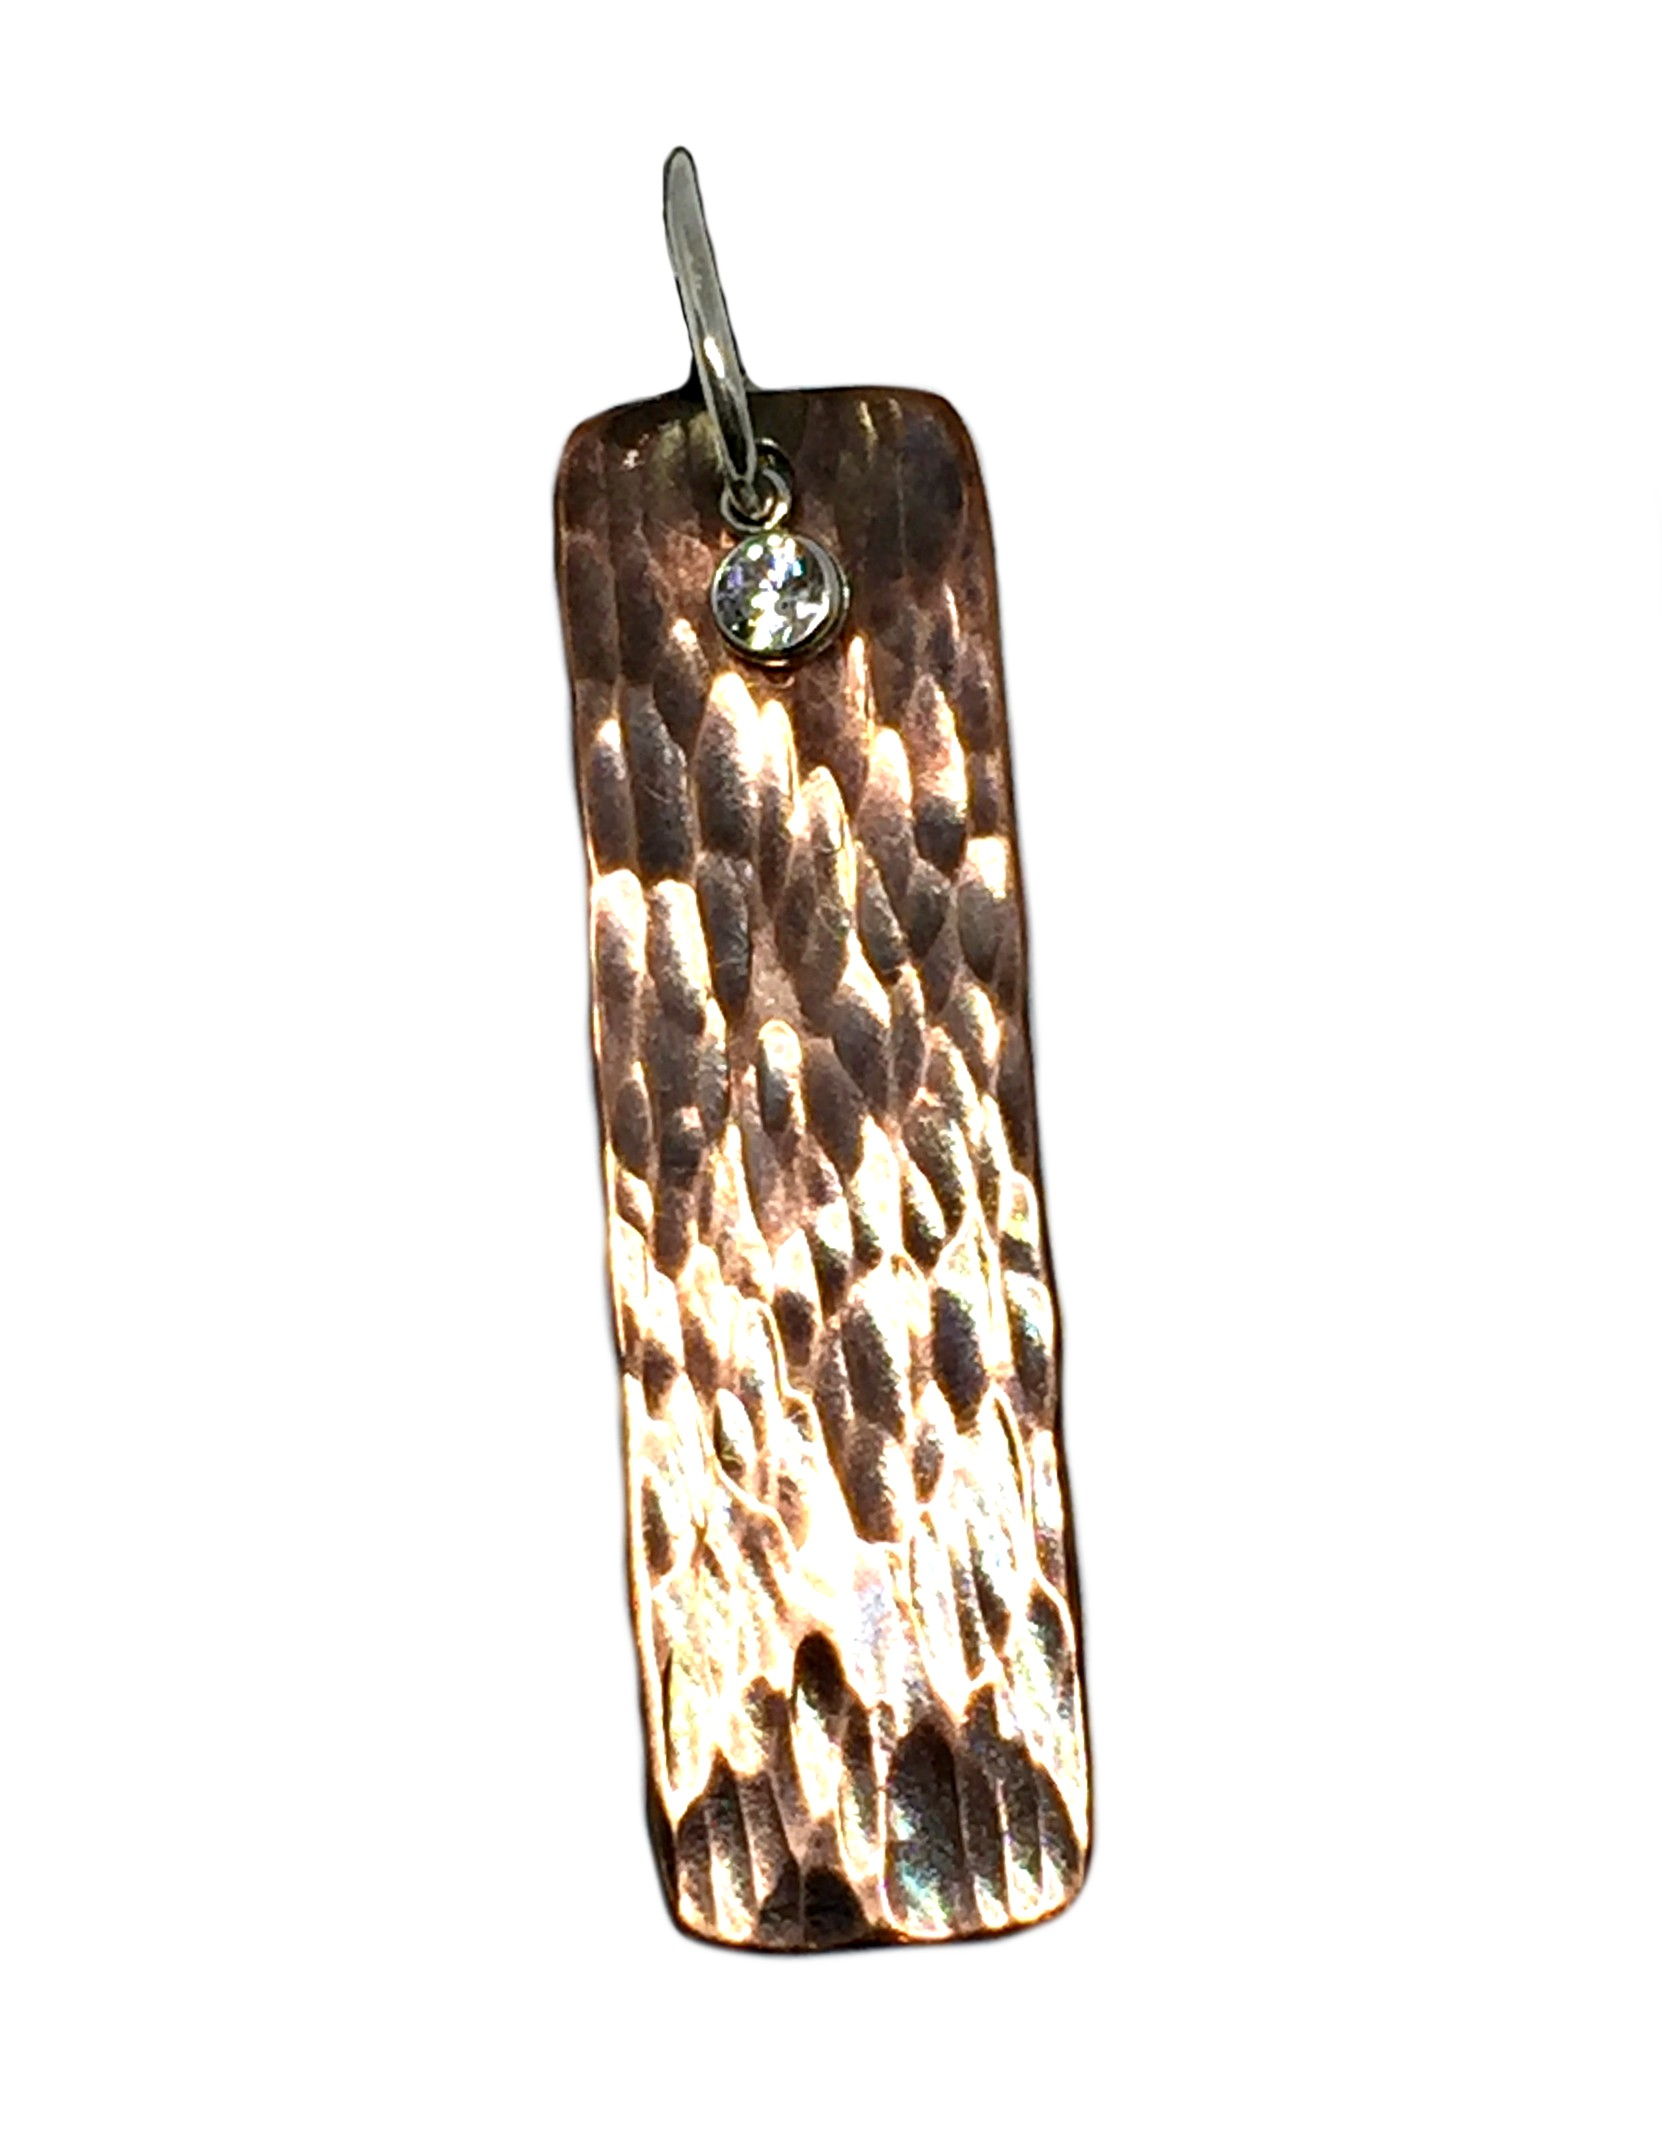 Copper, sterling silver, and CZ Karyn Chopik pendant | Effusion Art Gallery + Cast Glass Studio, Invermere BC